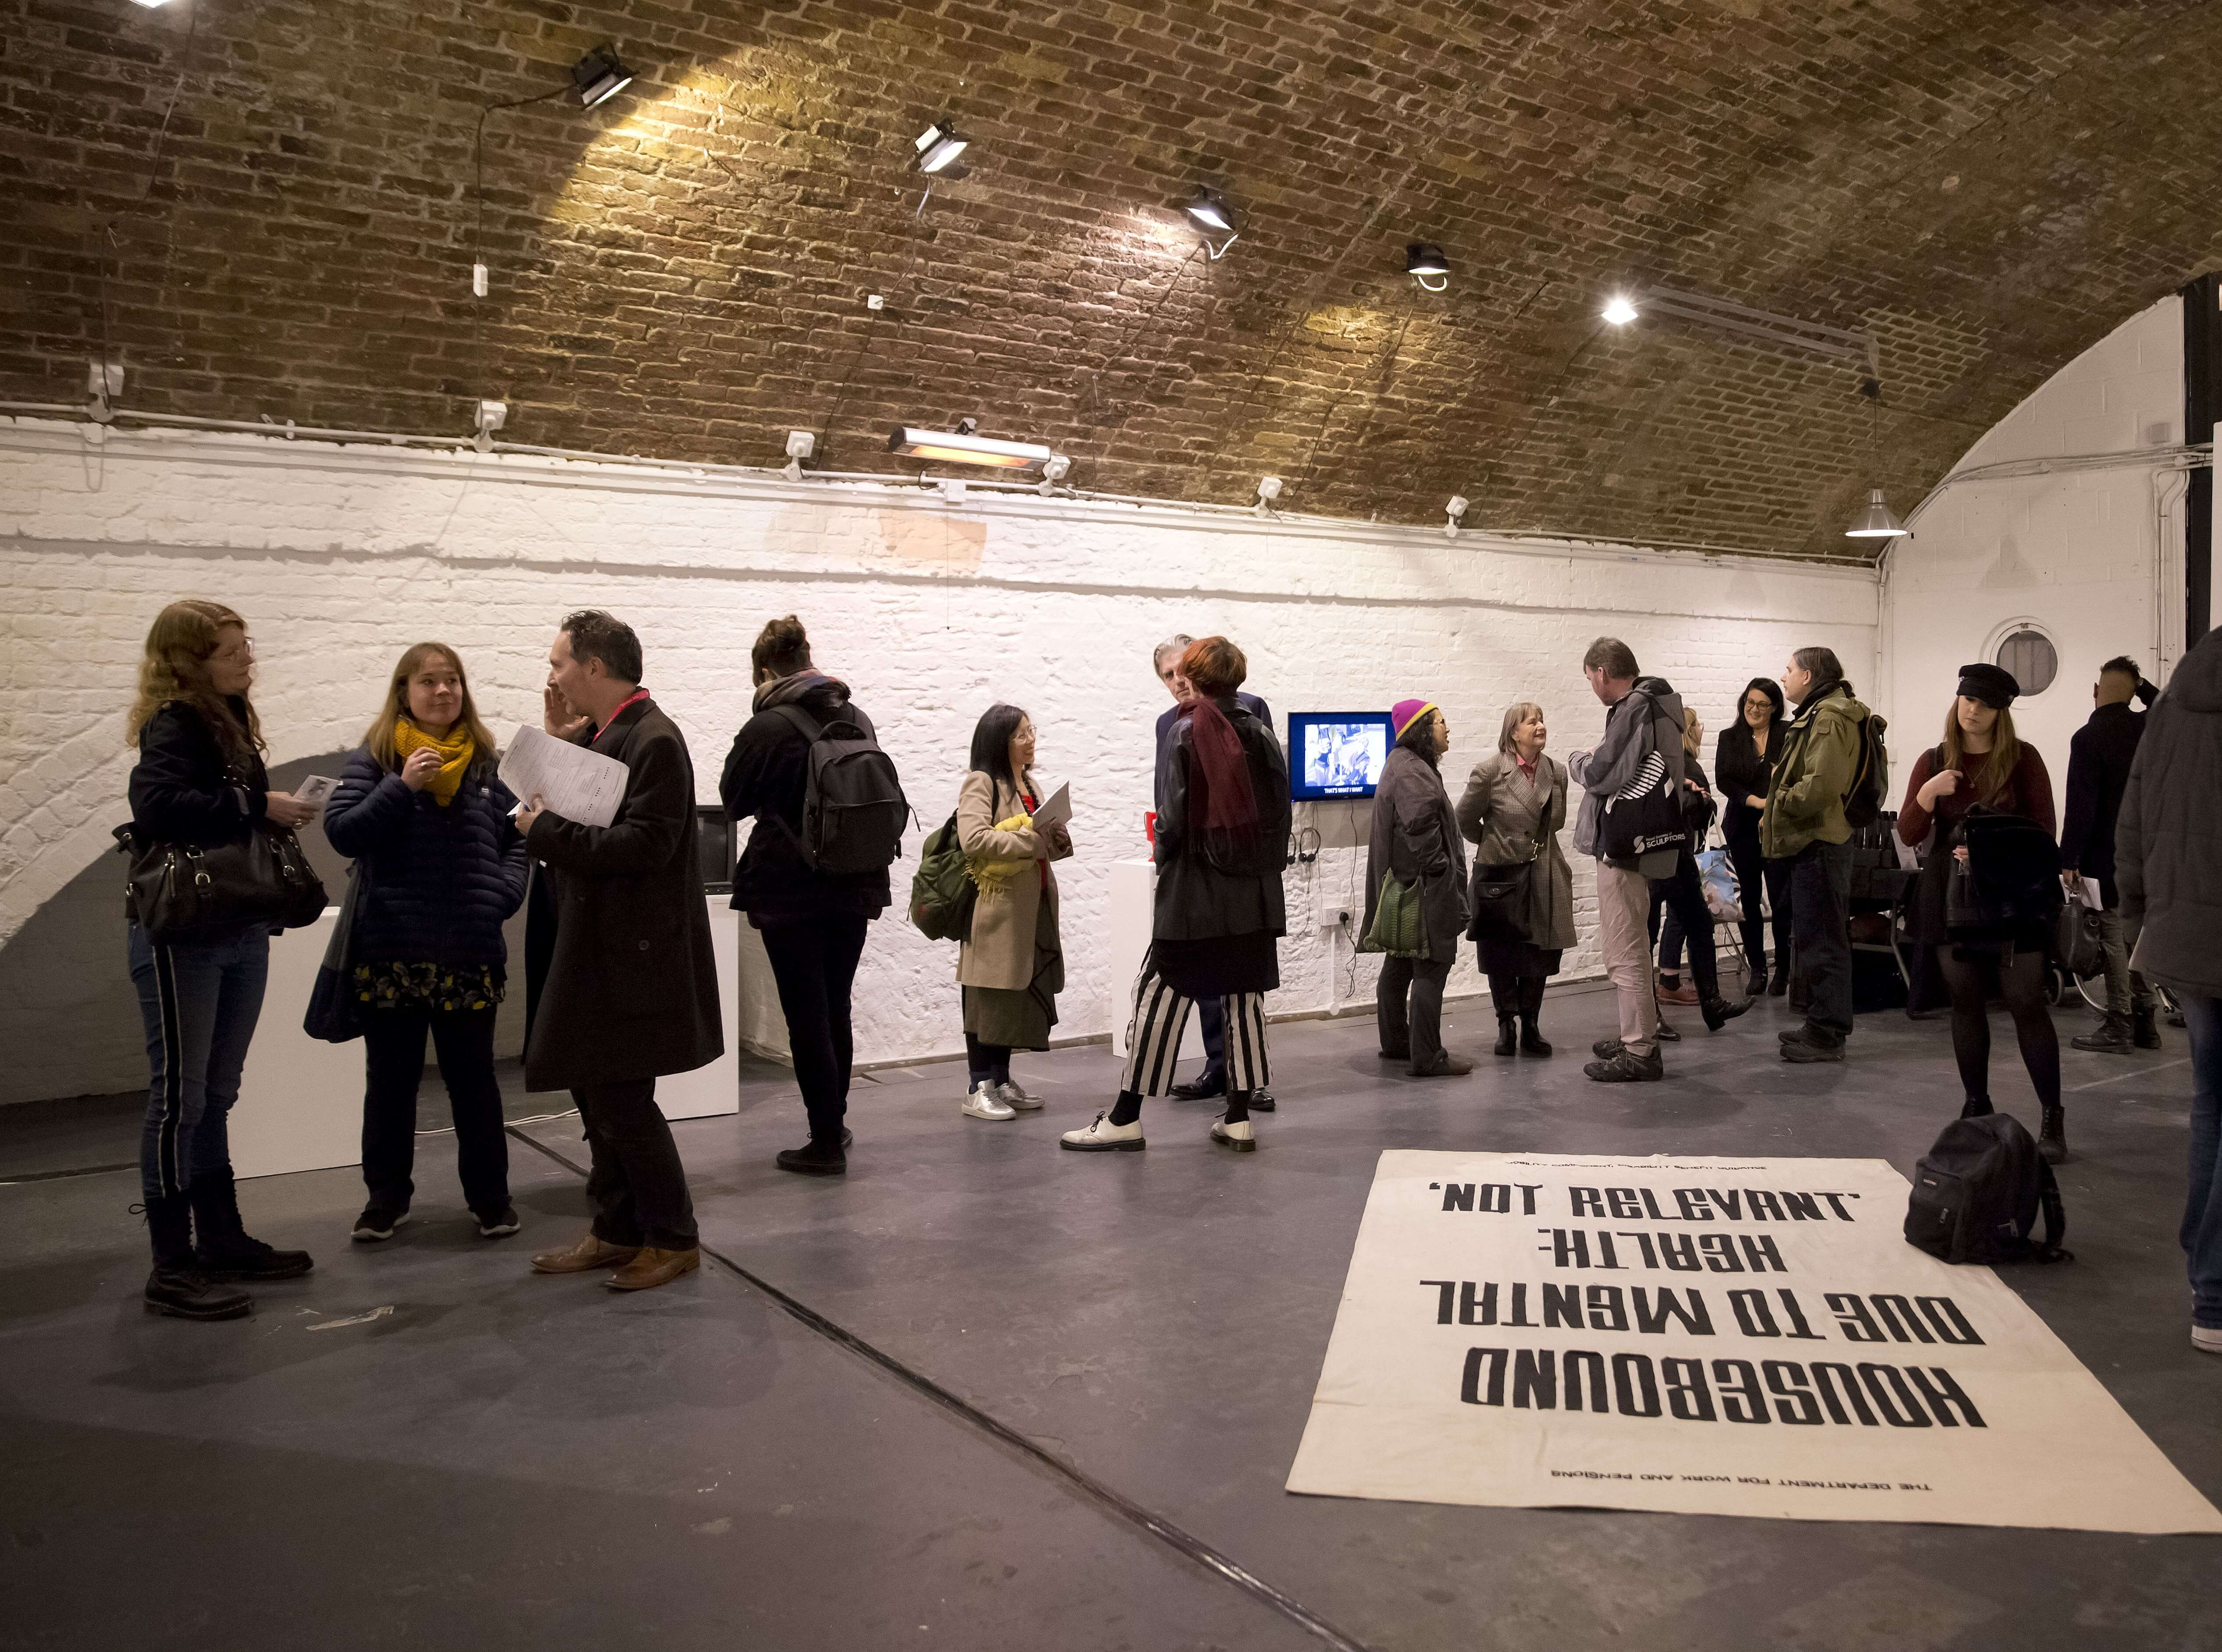 Crowd along side of room chatting to each other at art exhibition Shape Open Retrospective, Hoxton Arches, 2018